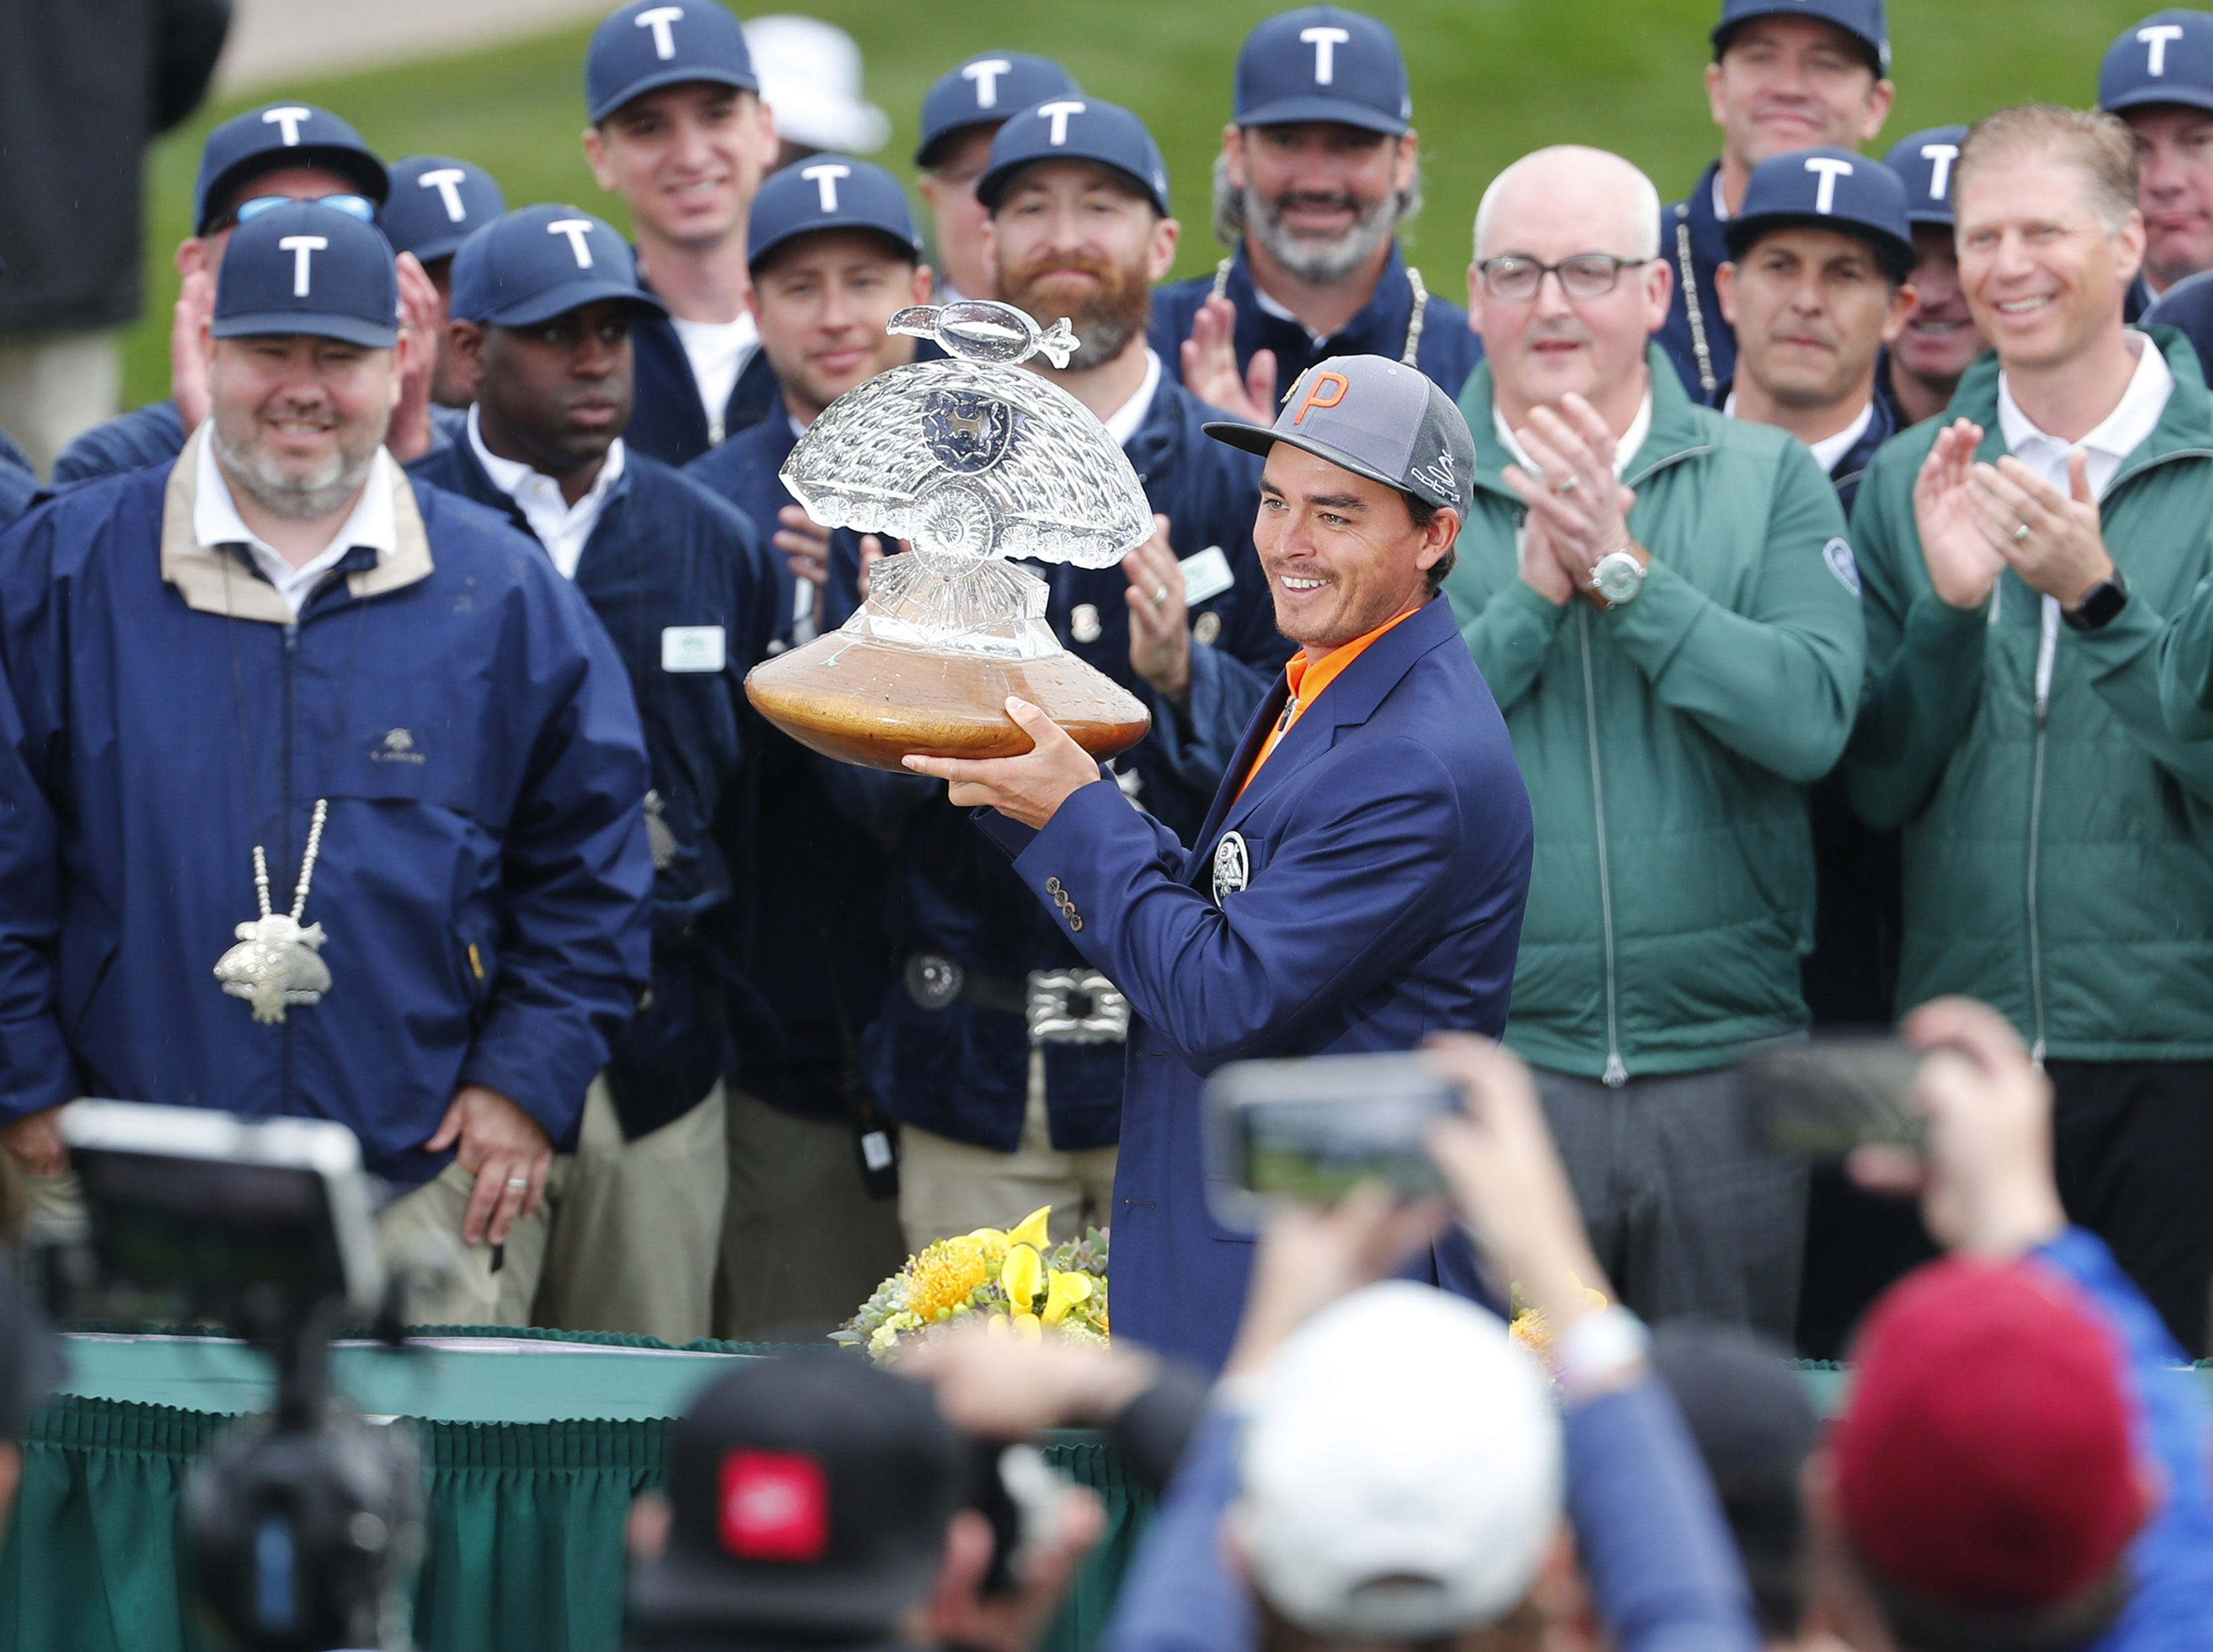 Rickie Fowler holds holds the trophy after winning the Waste Management Phoenix Open at the TPC Scottsdale Feb. 3, 2019.